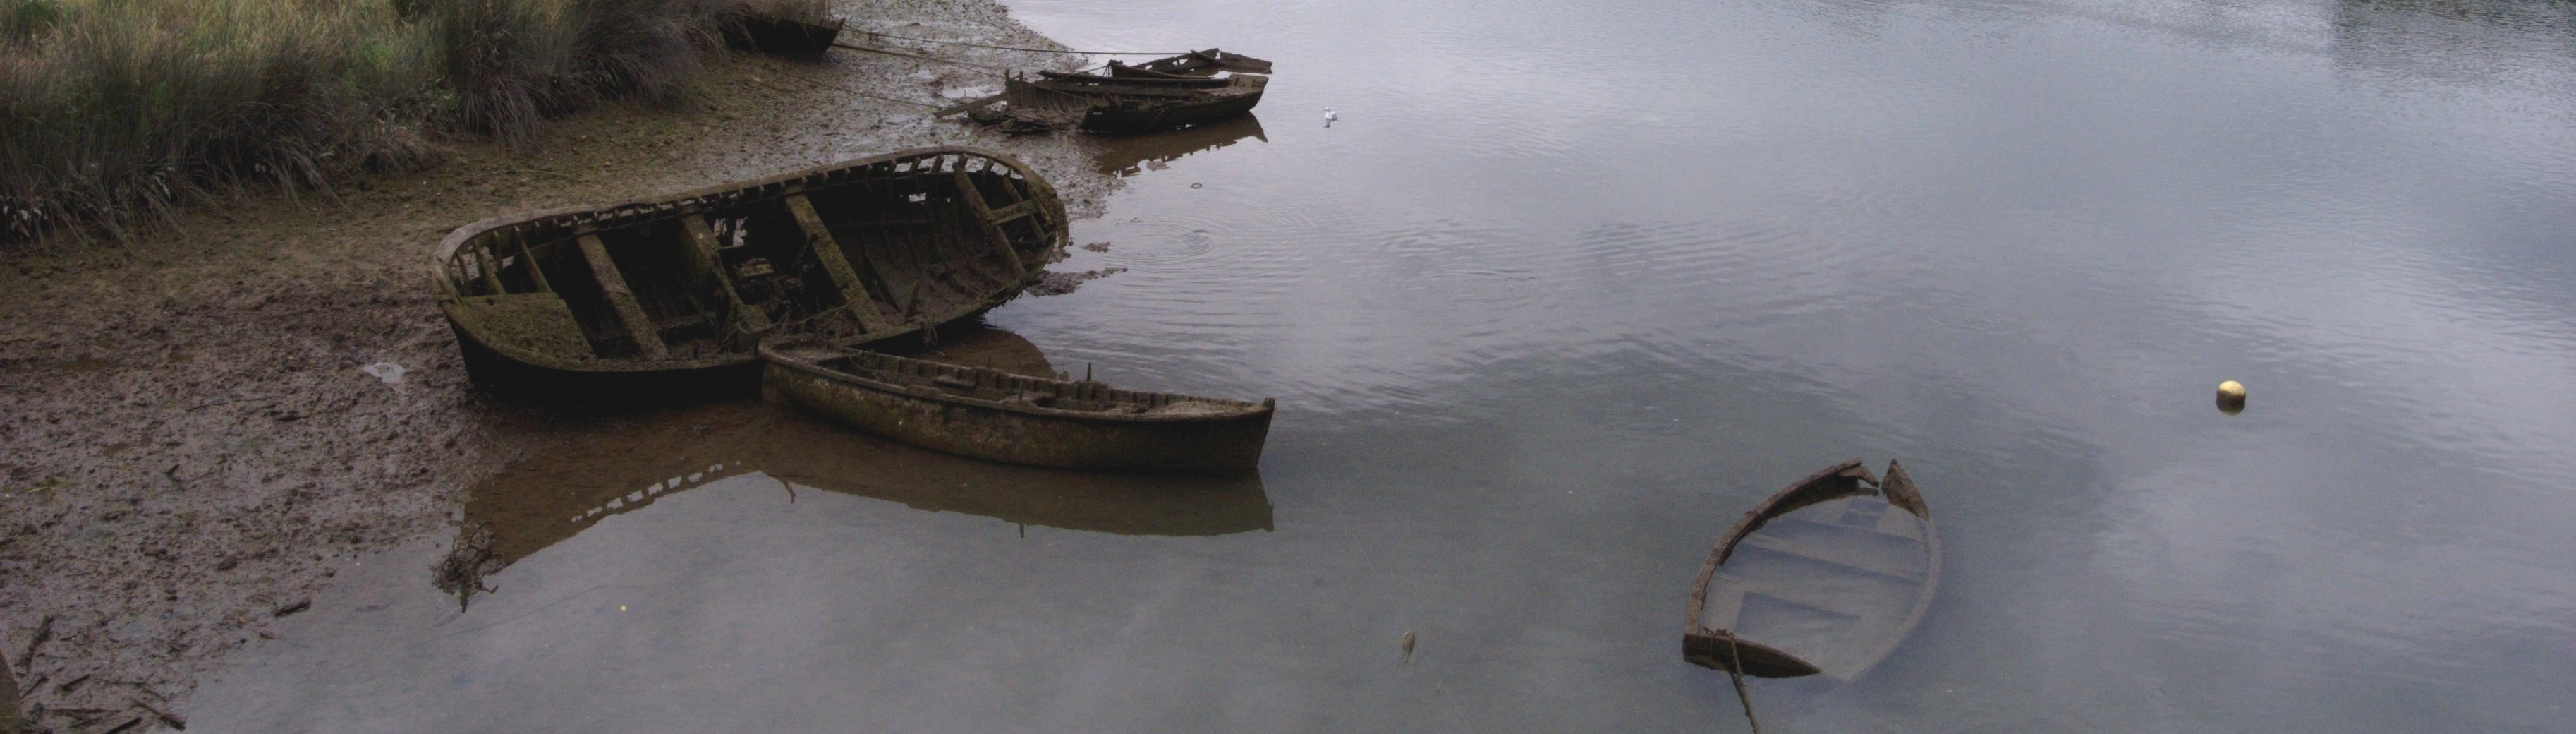 Photograph of a 		      couple of sunken boats